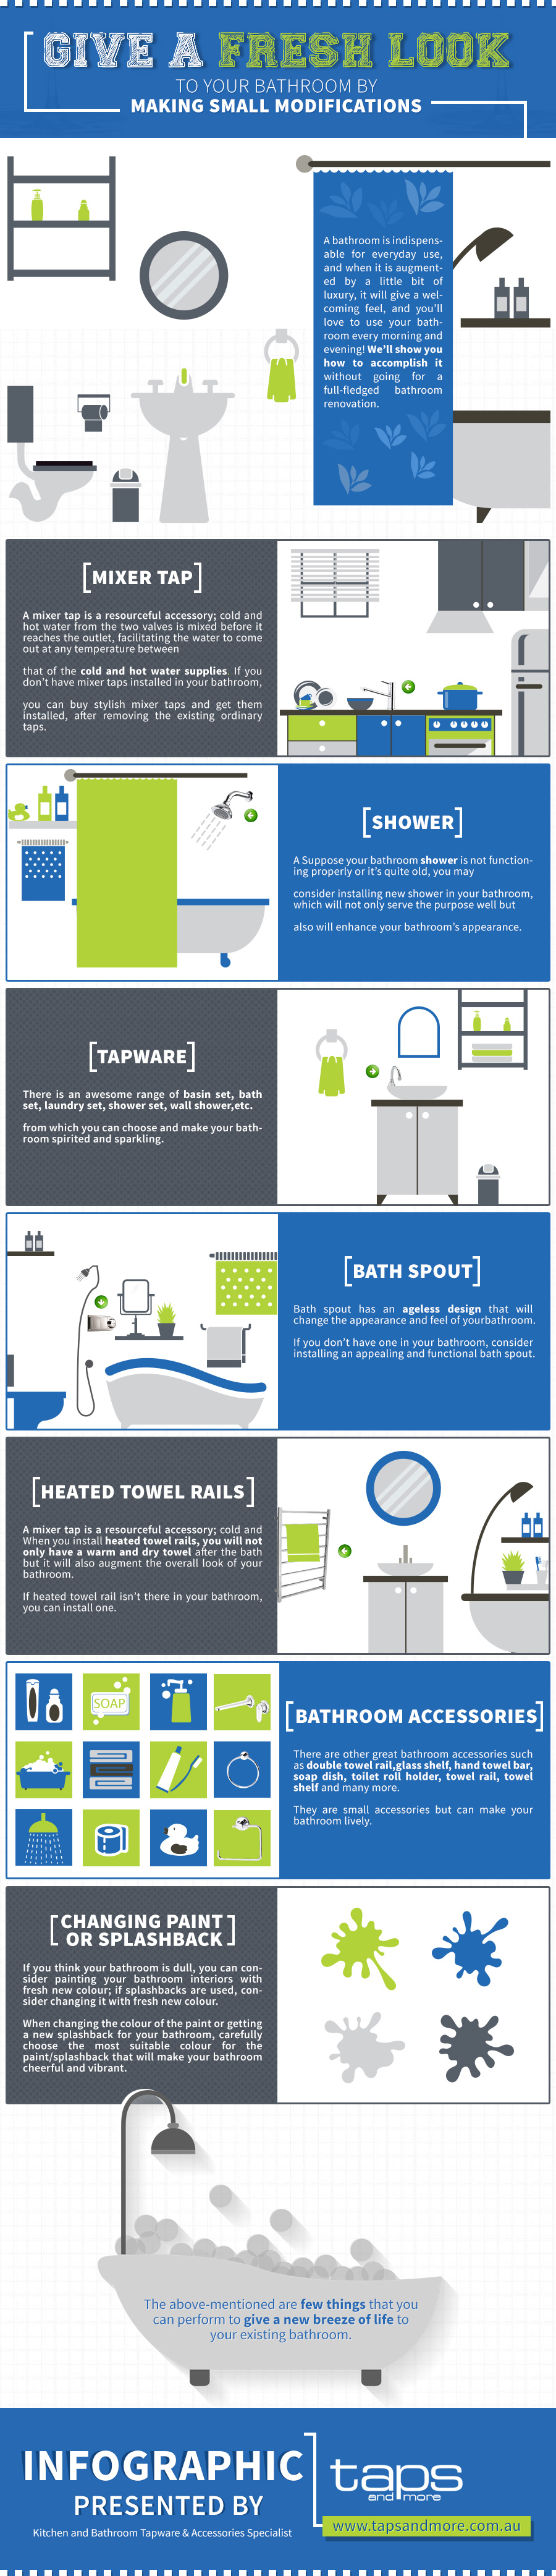 Fresh Bathroom Look Infographic